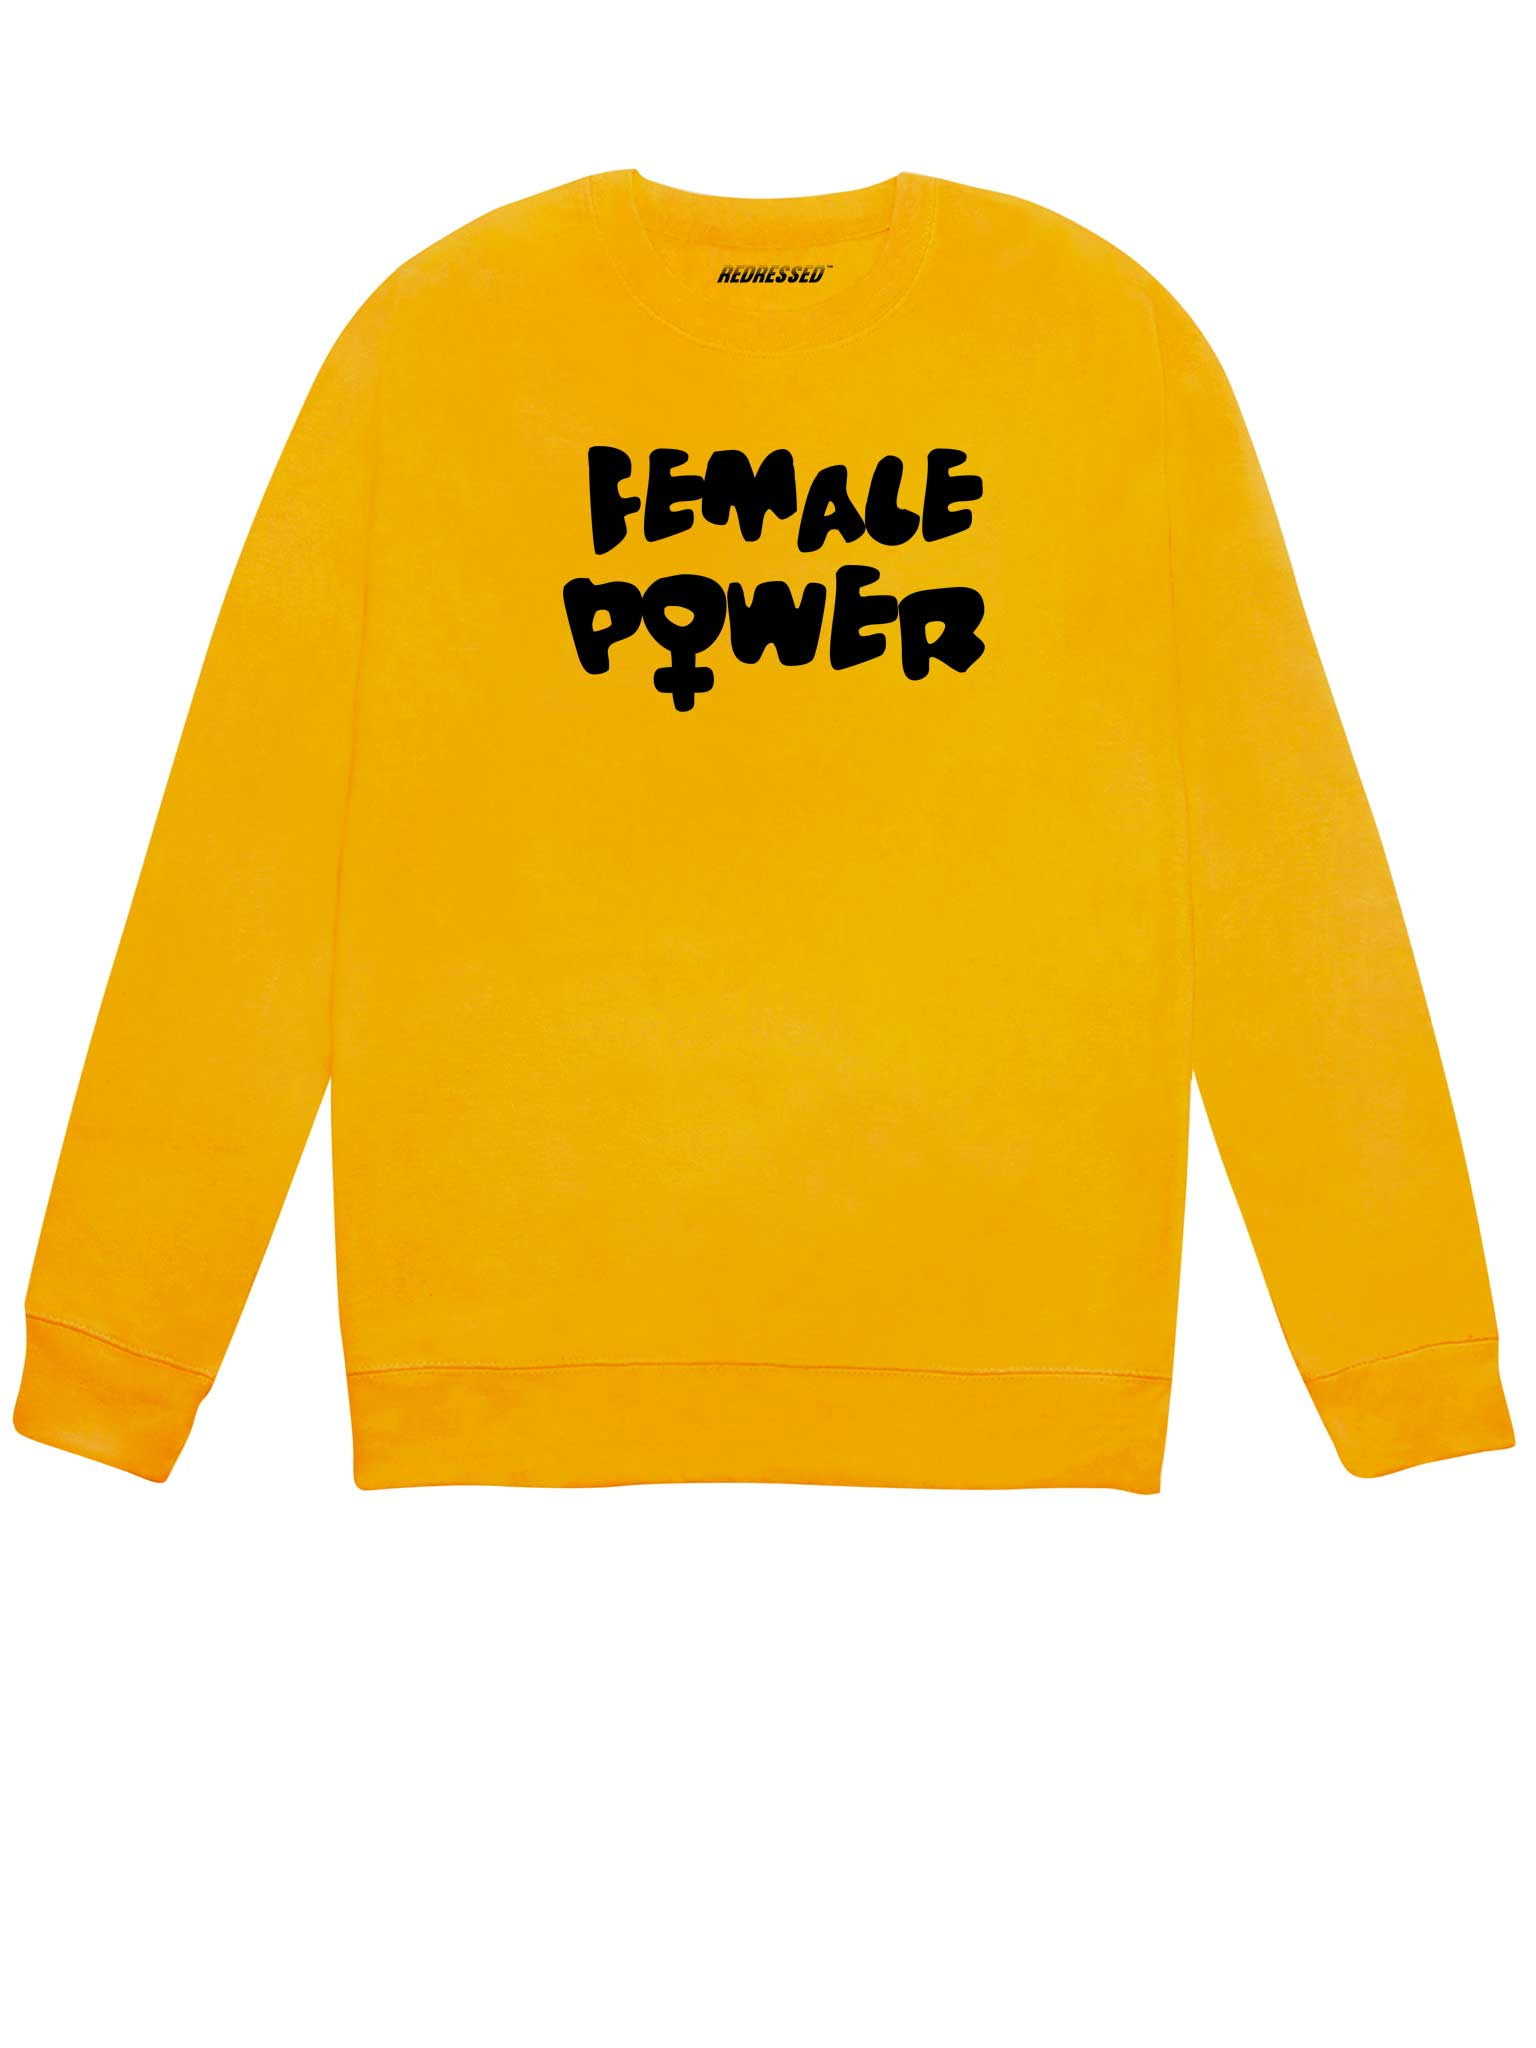 Female Power Sweatshirt